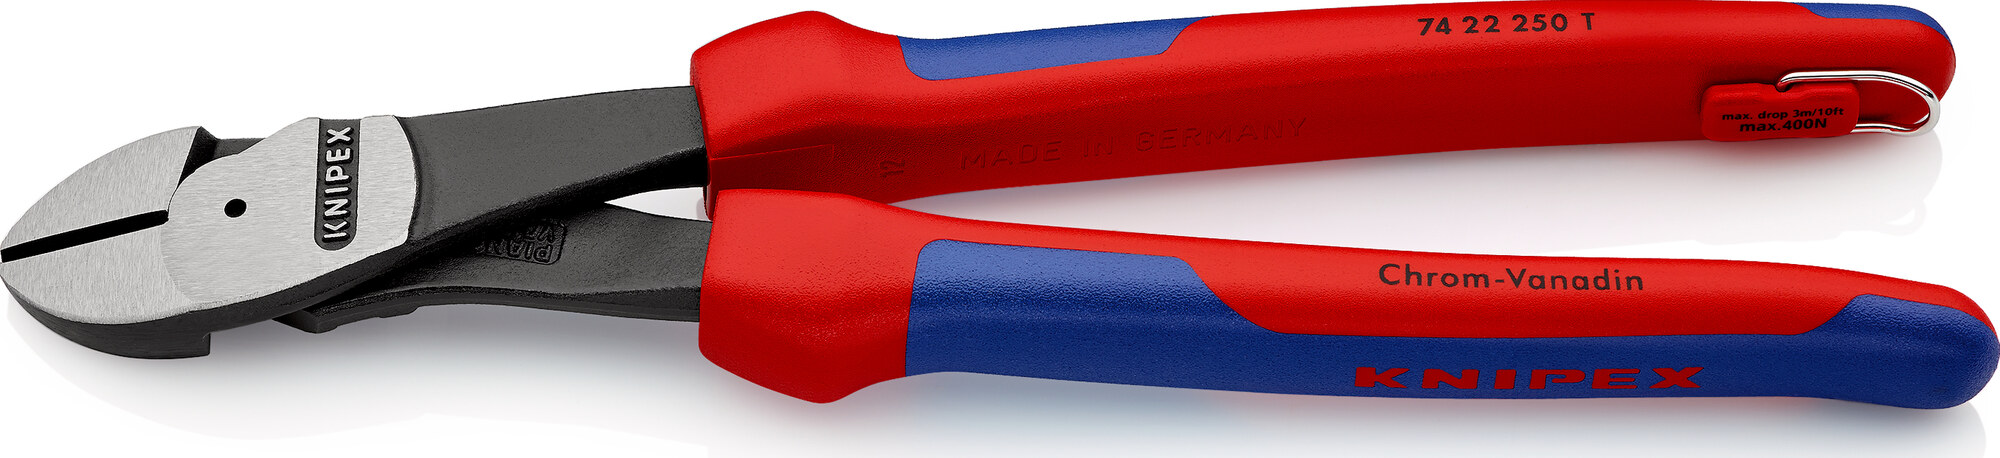 KNIPEX High Leverage Diagonal Cutter with tether attachment point 250 mm, No KNPK0141_Winkel-12_s.jpg